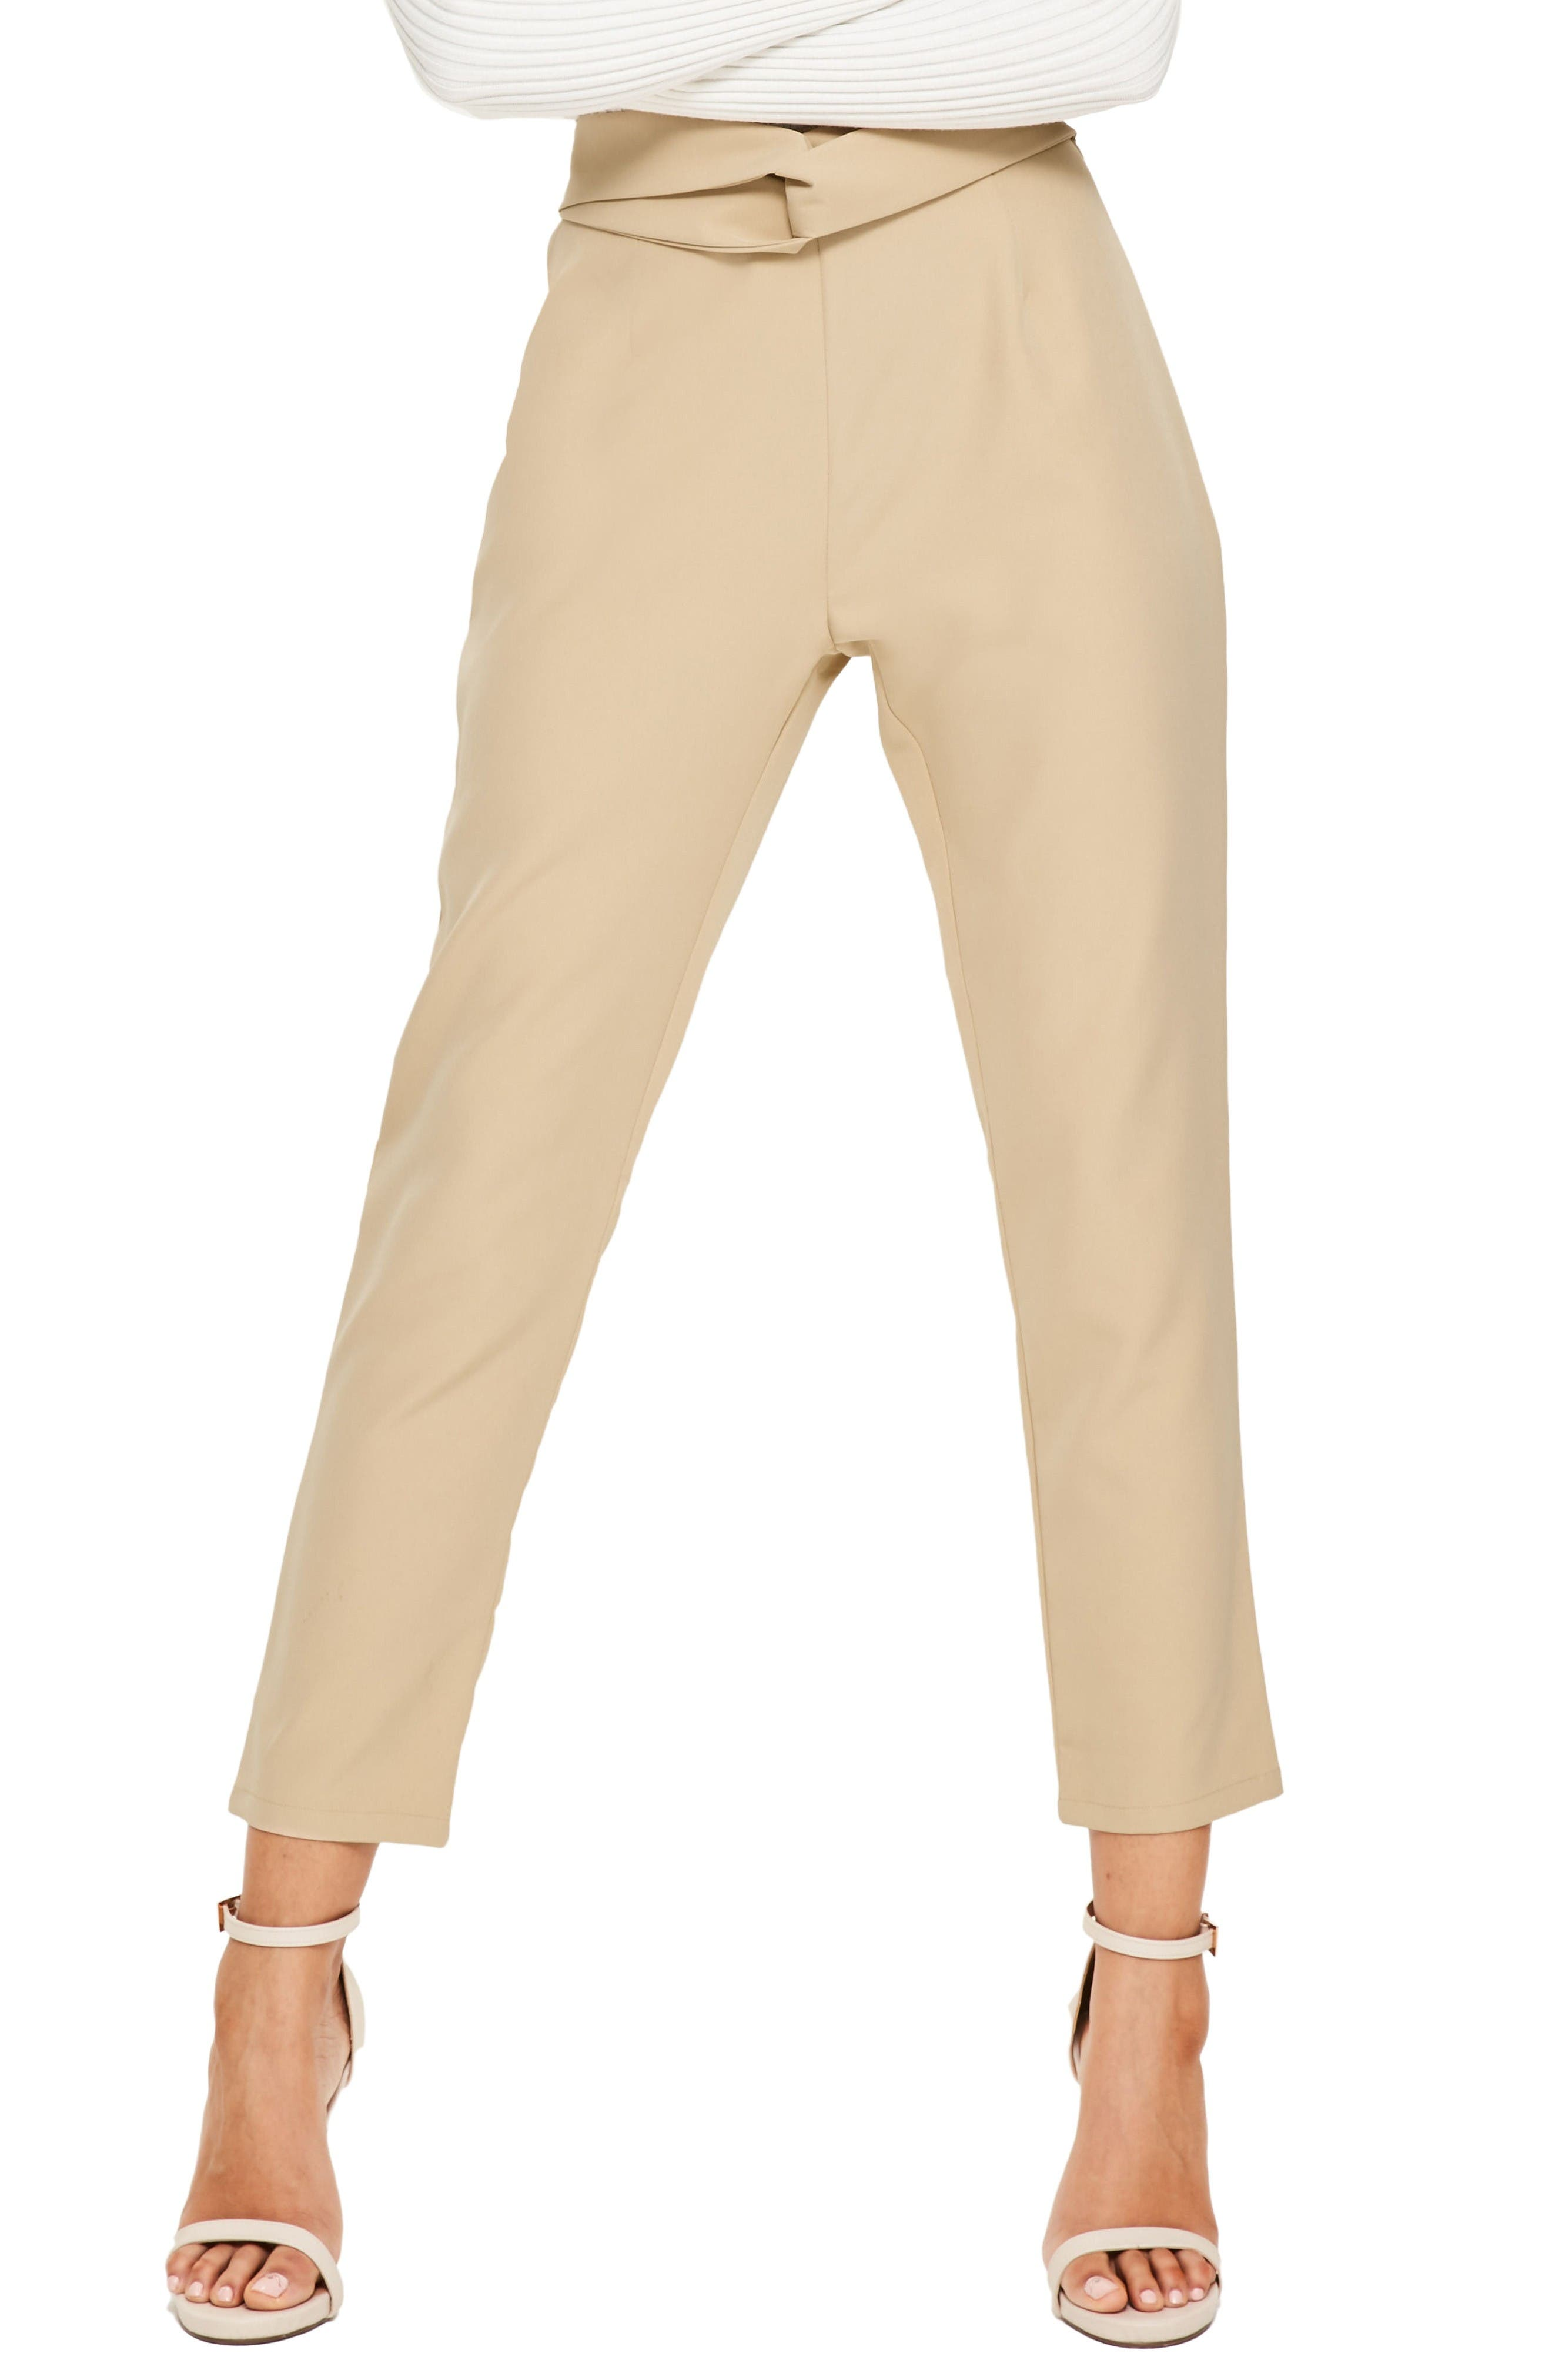 Alternate Image 1 Selected - Missguided Cigarette Trousers